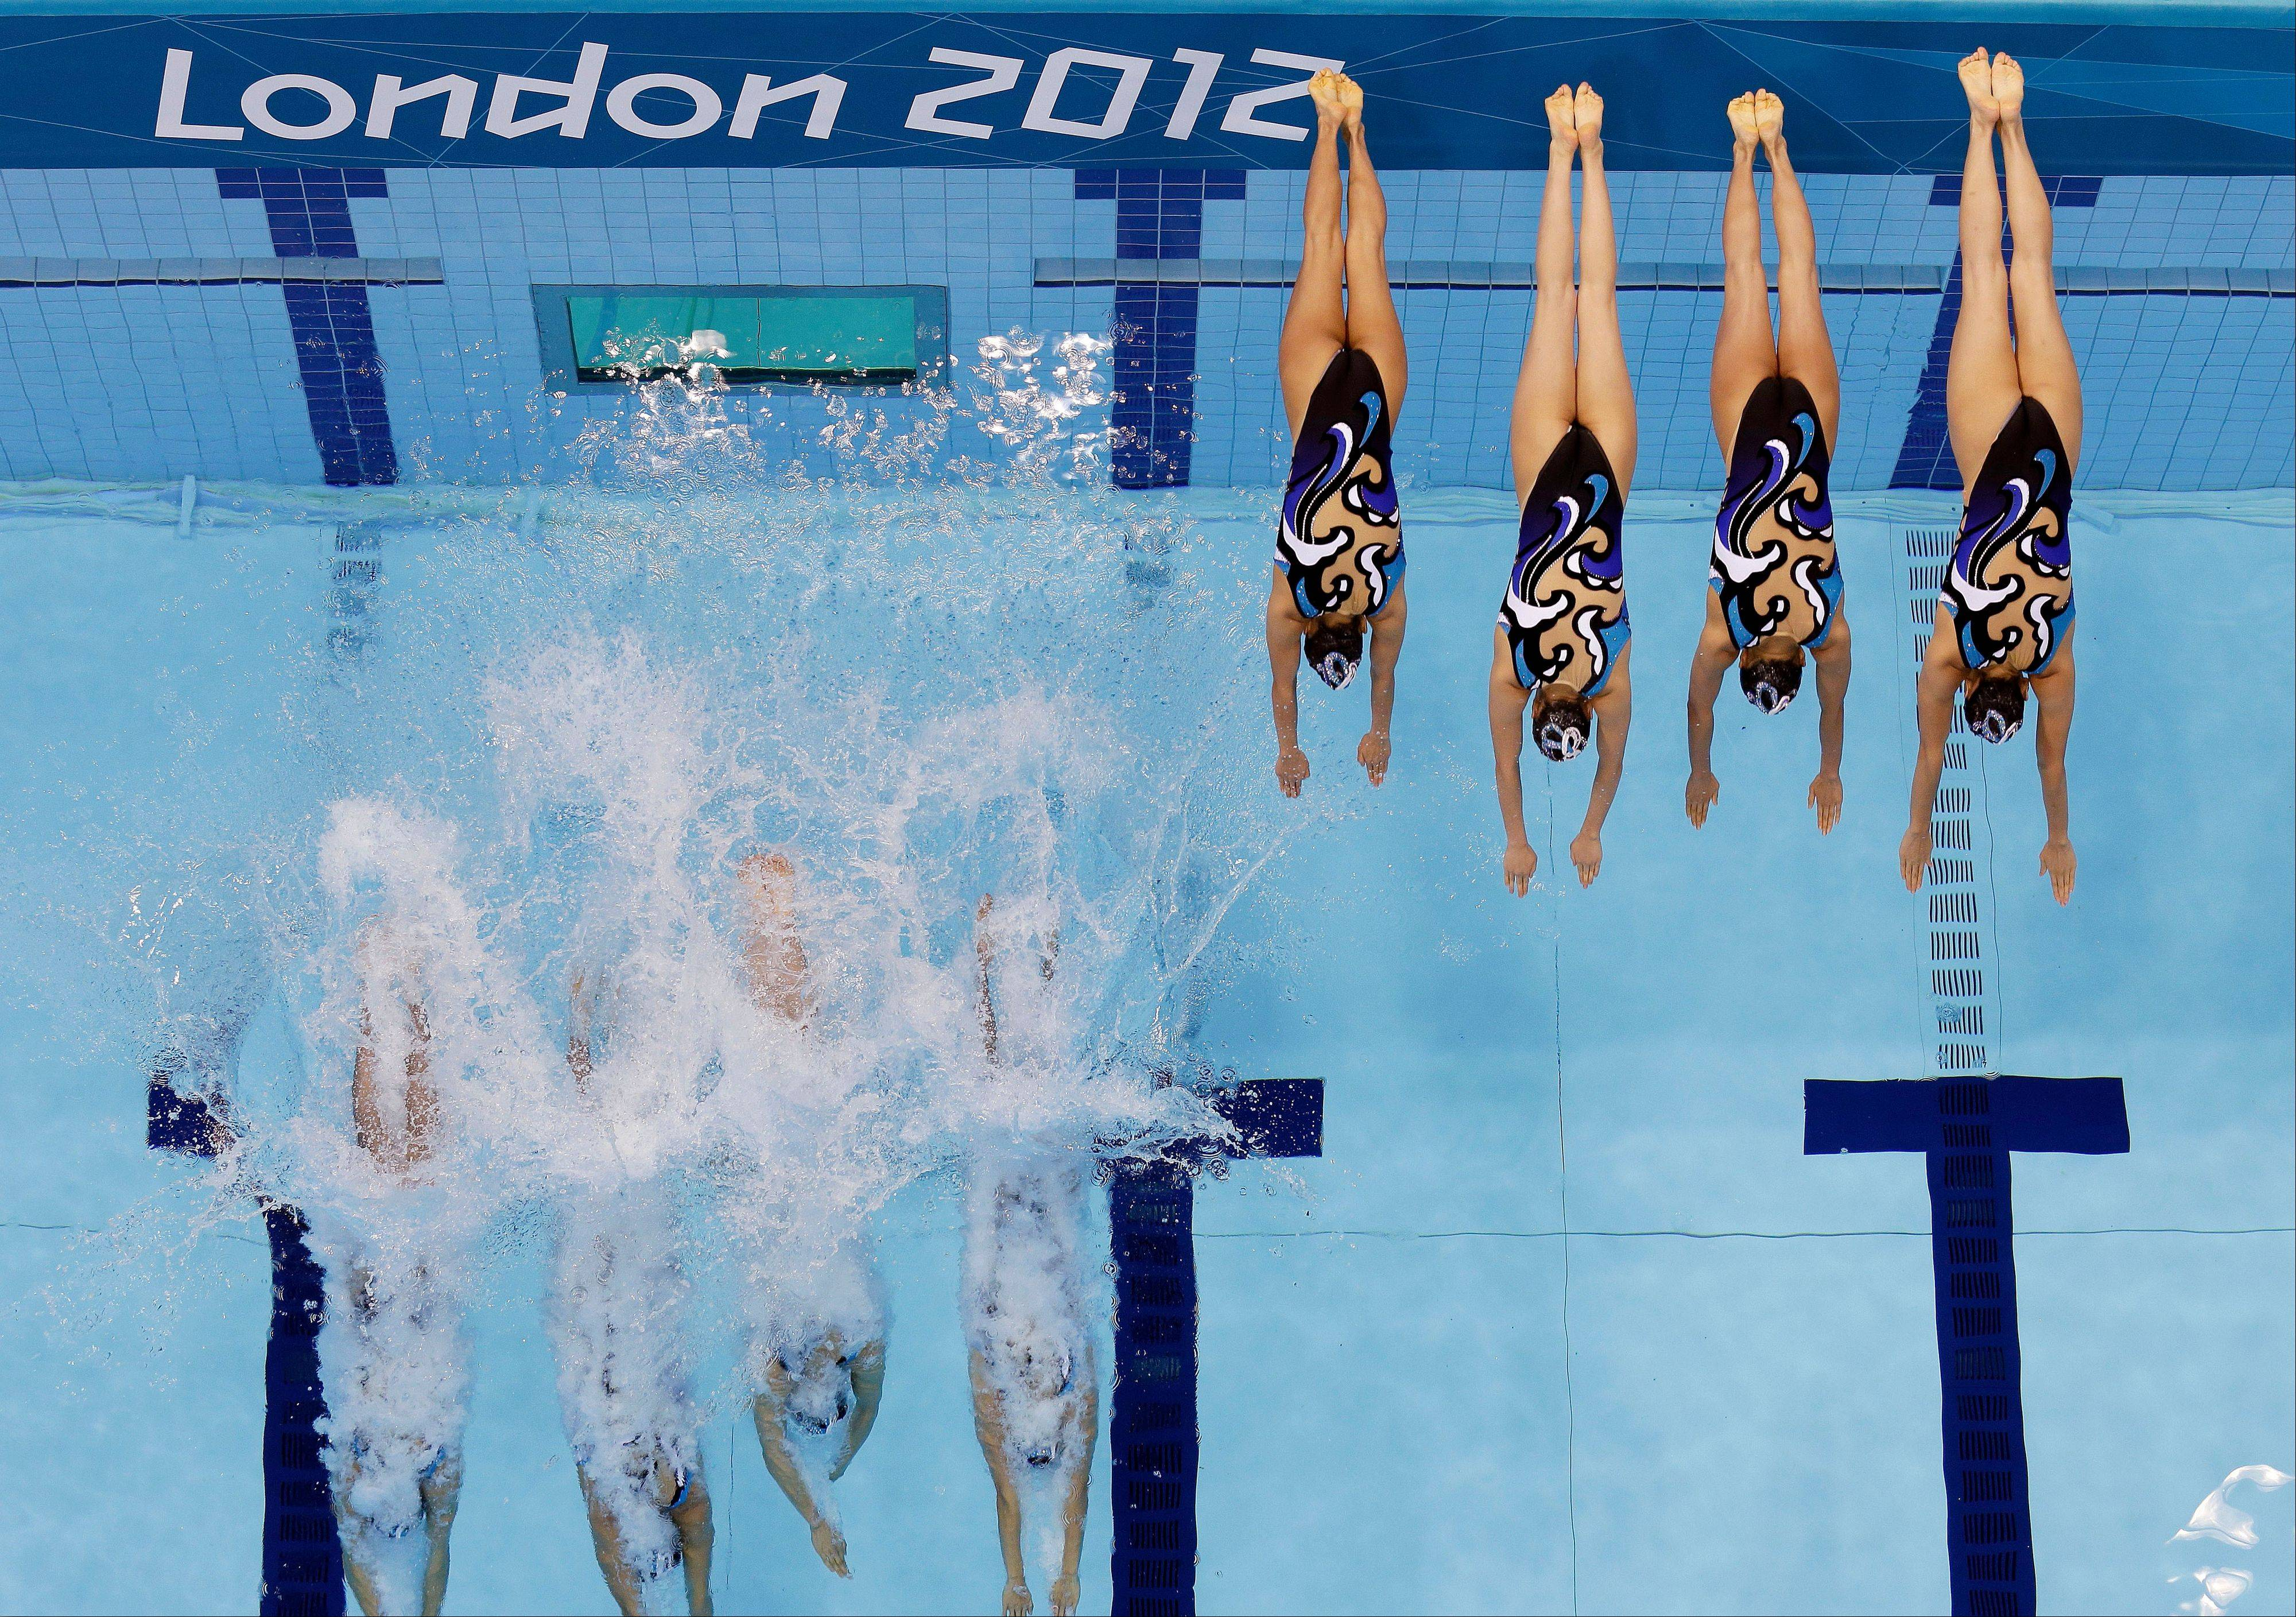 Japan's women's synchronized swimming team start their technical routine at the Aquatics Centre in the Olympic Park during the 2012 Summer Olympics in London, Thursday, Aug. 9, 2012.